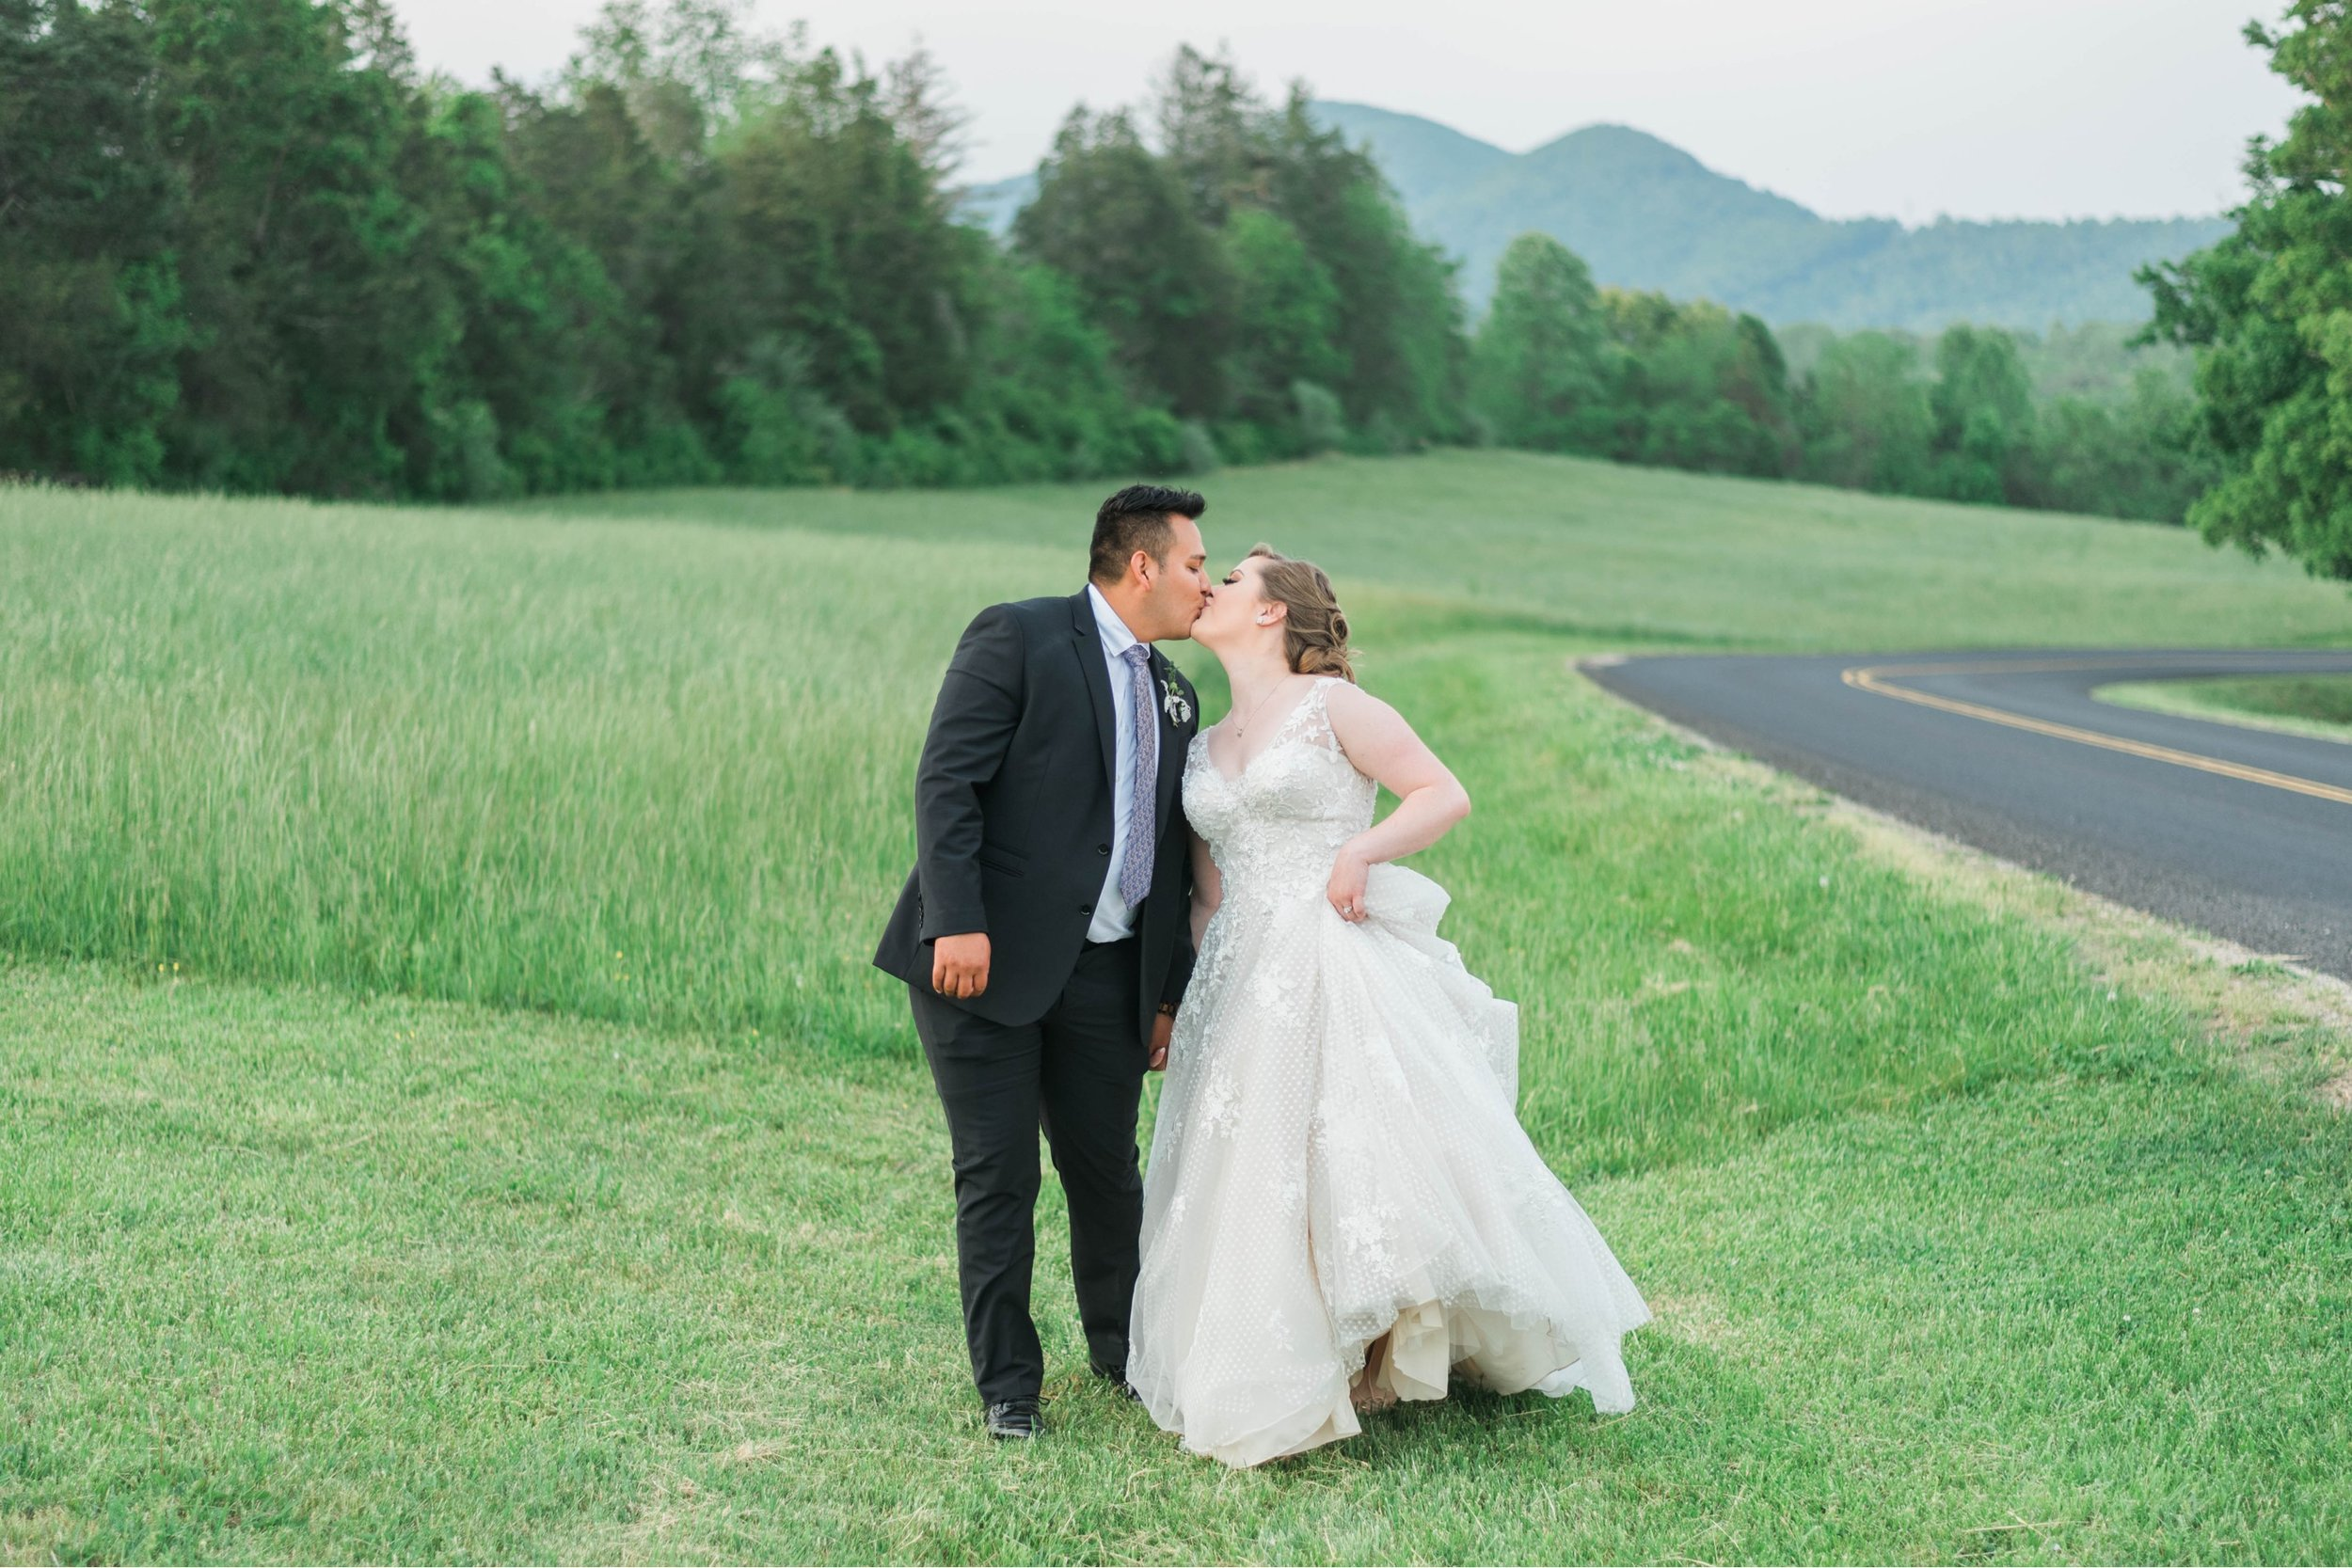 Jillian+Abi_OakridgeEstate_Wedding_VirginiaWeddingPhotographer_SpringWedding 9.jpg